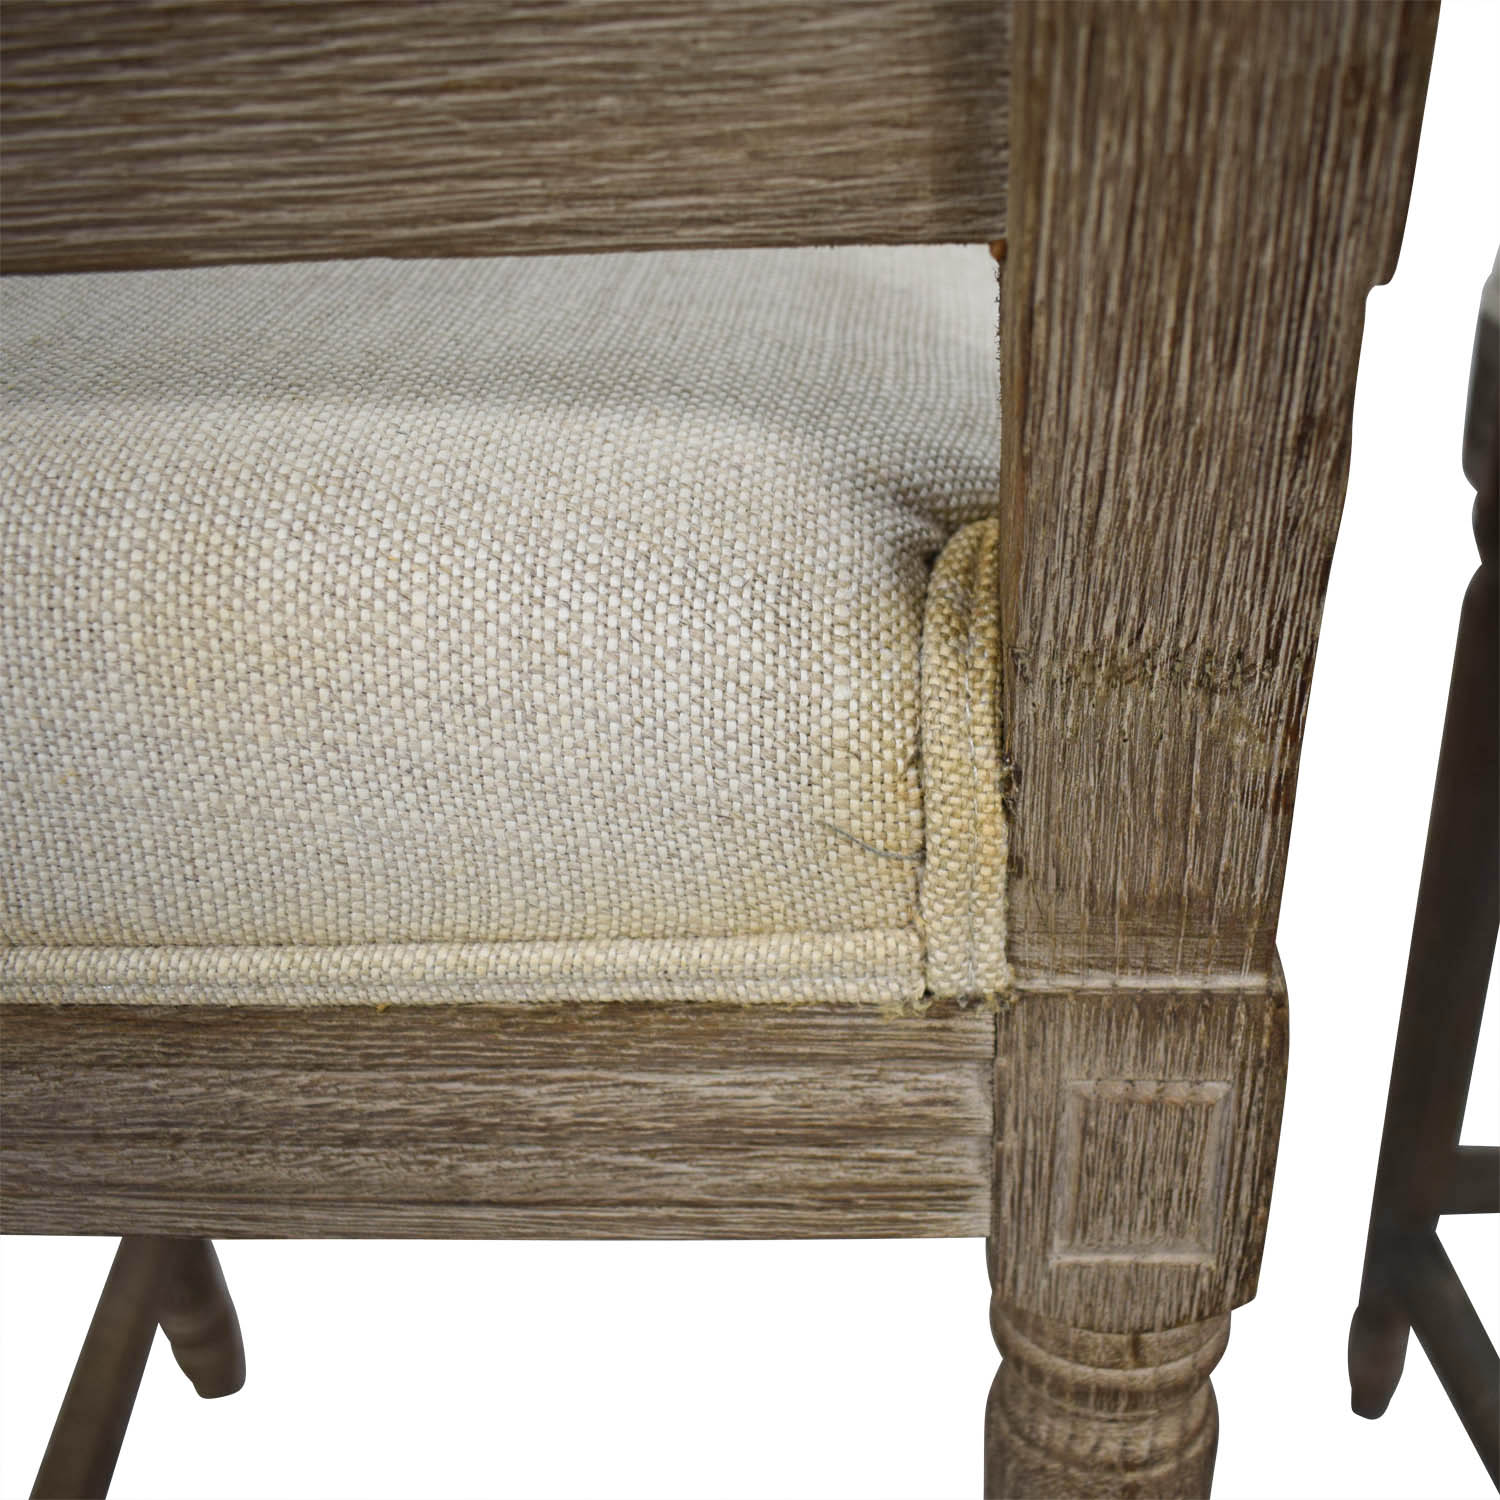 Restoration Hardware Restoration Hardware Vintage French Square Counter Stools for sale